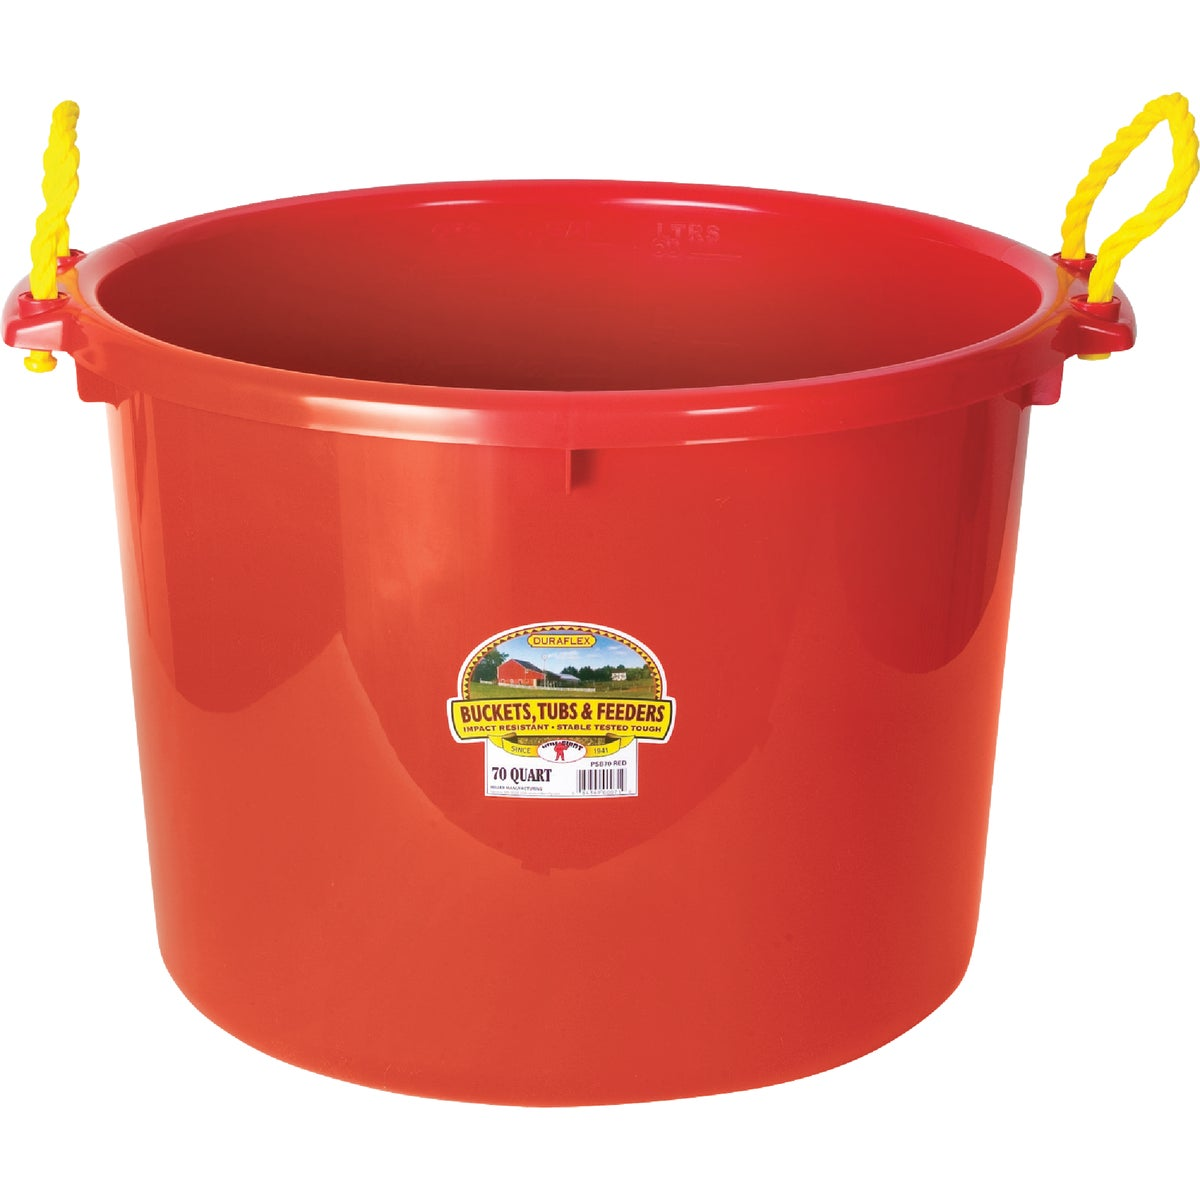 70QT RED MUCK BUCKET - PSB70RED by Miller Manufacturing